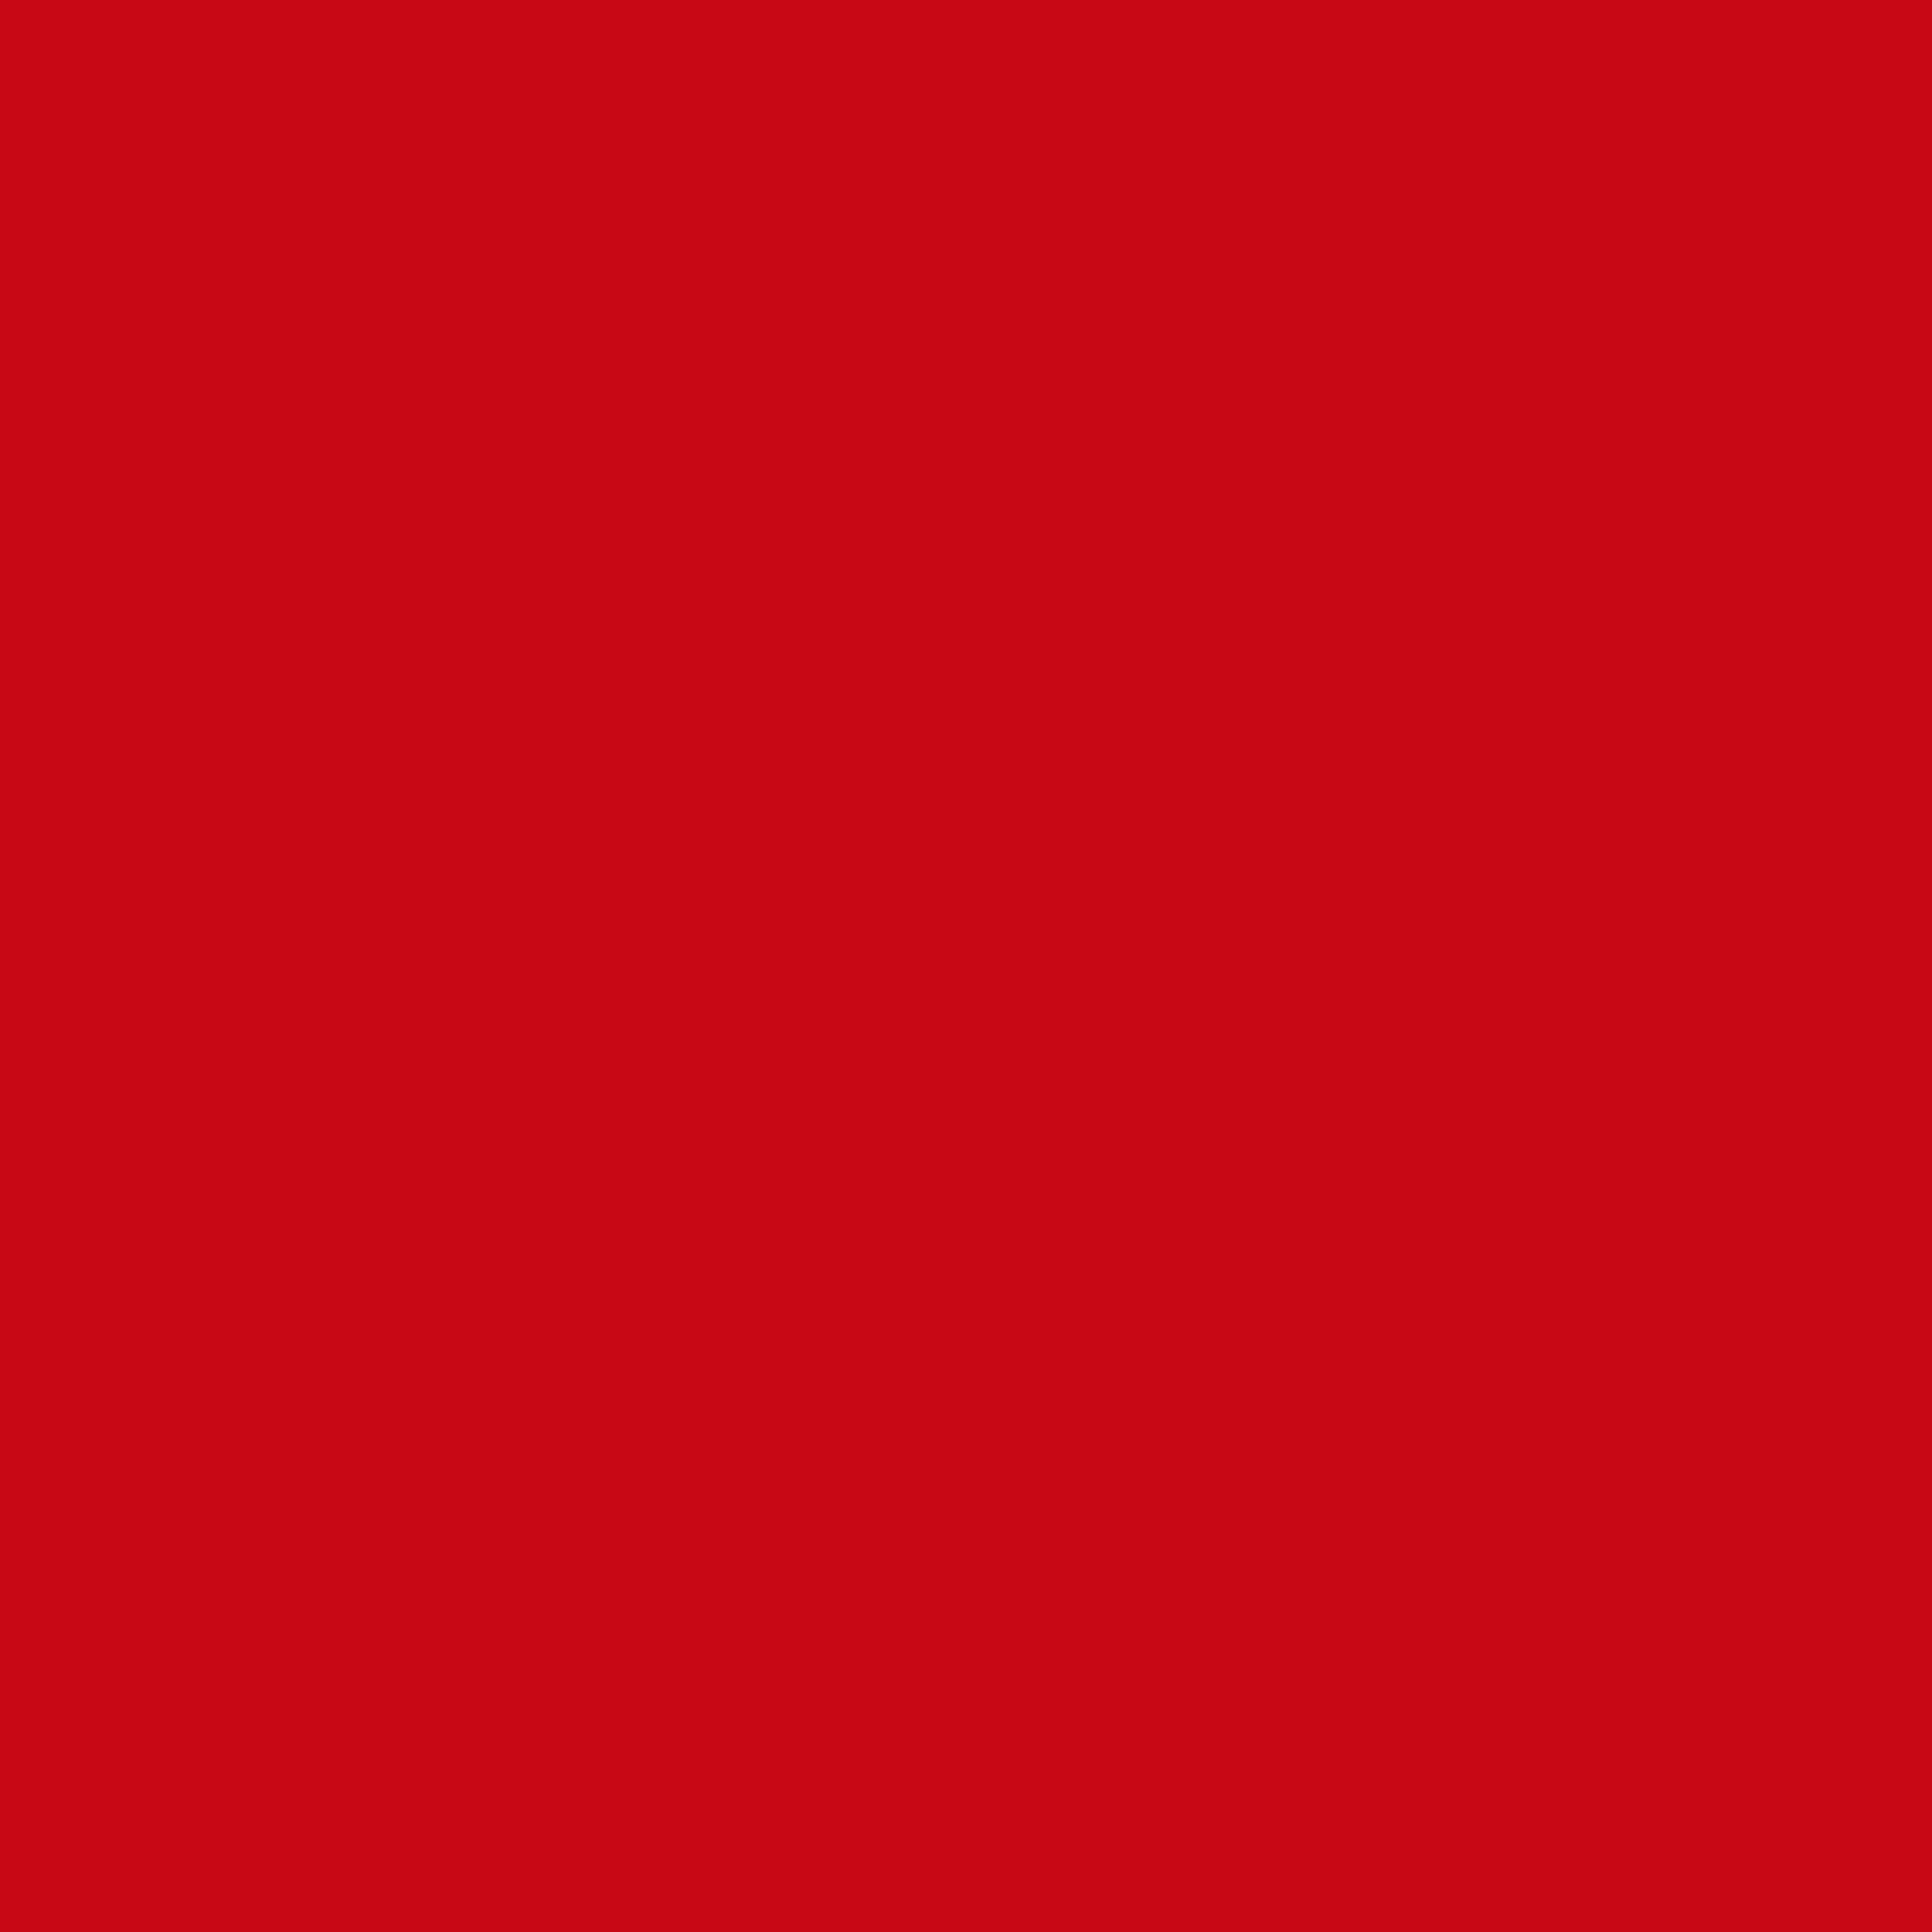 3600x3600 Venetian Red Solid Color Background